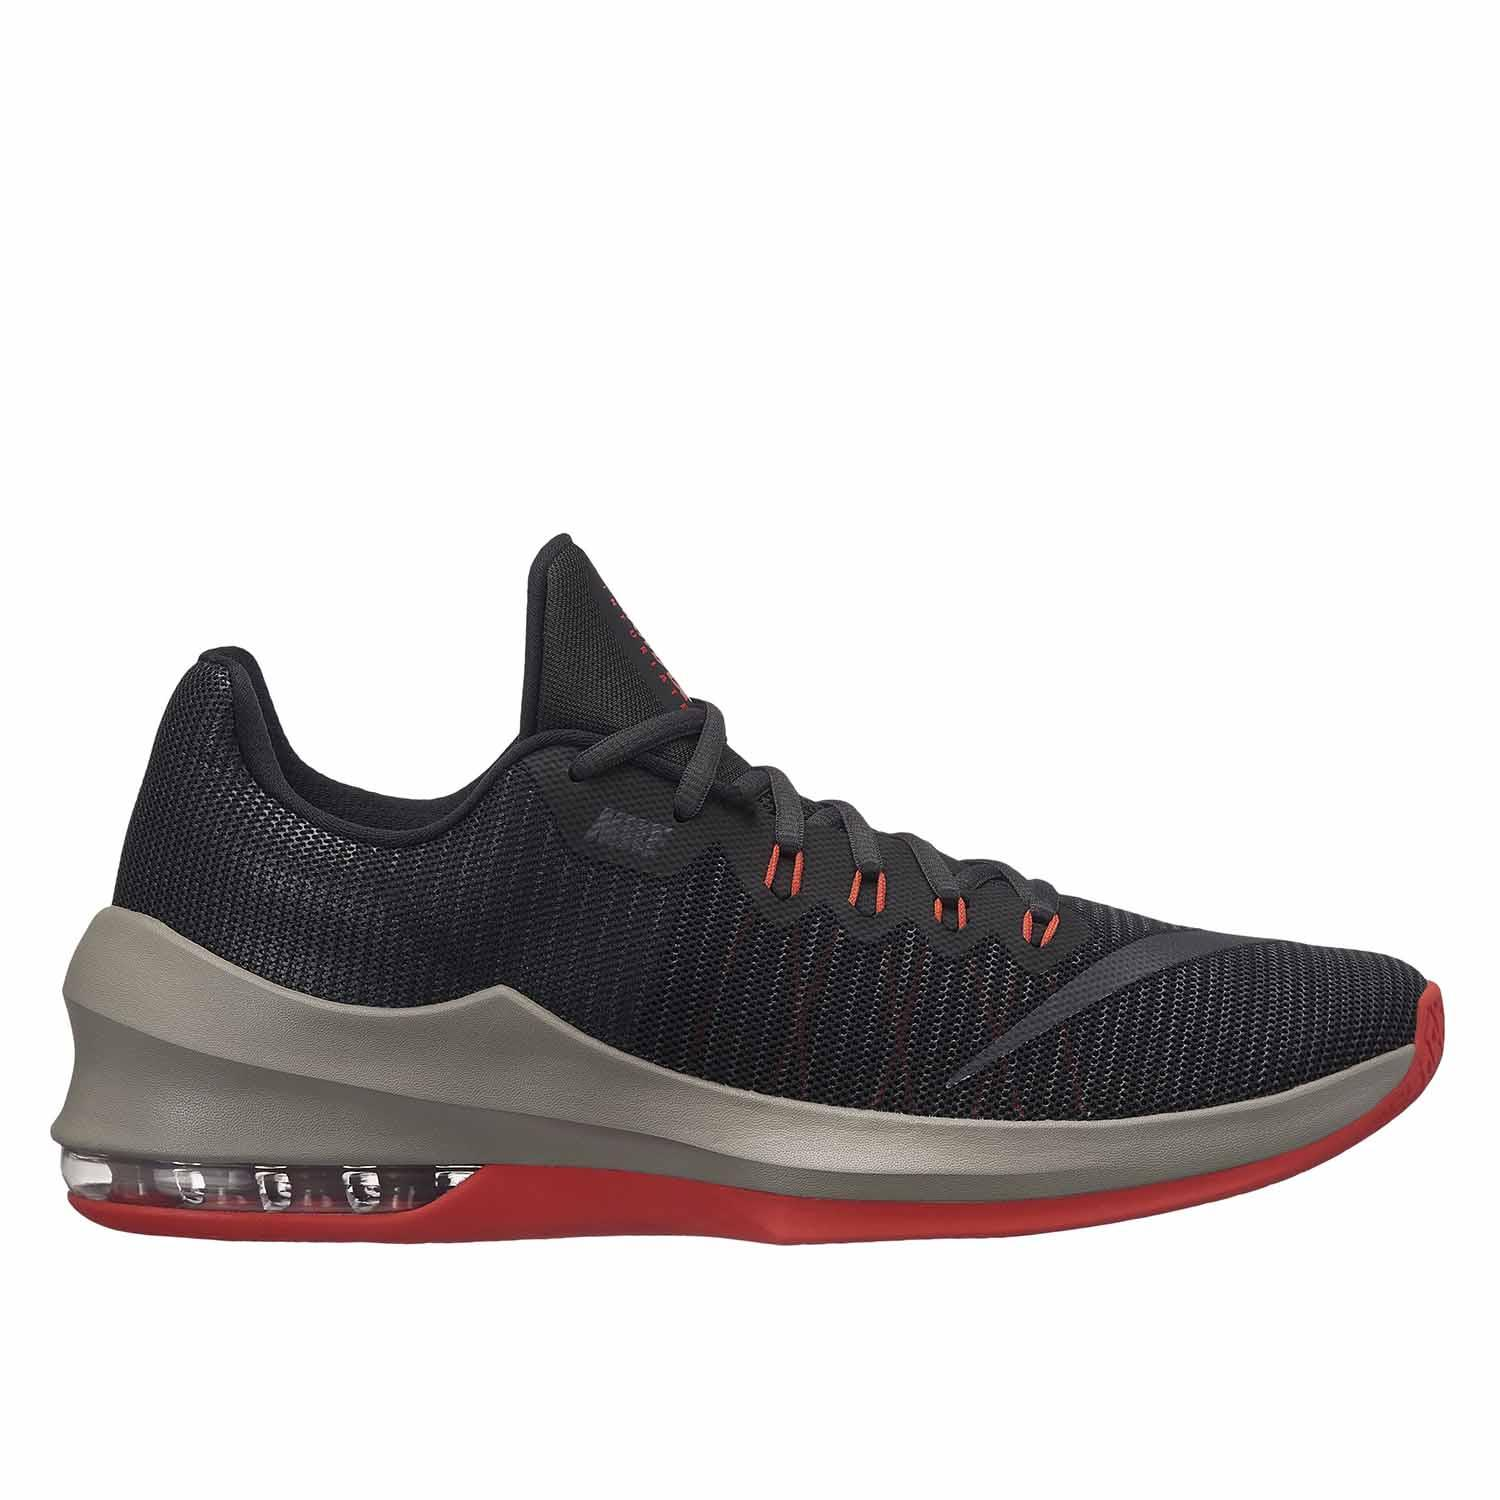 the best attitude 9aa47 01603 Nike Air Max Infuriate 2 Low Men s Basketball Shoe